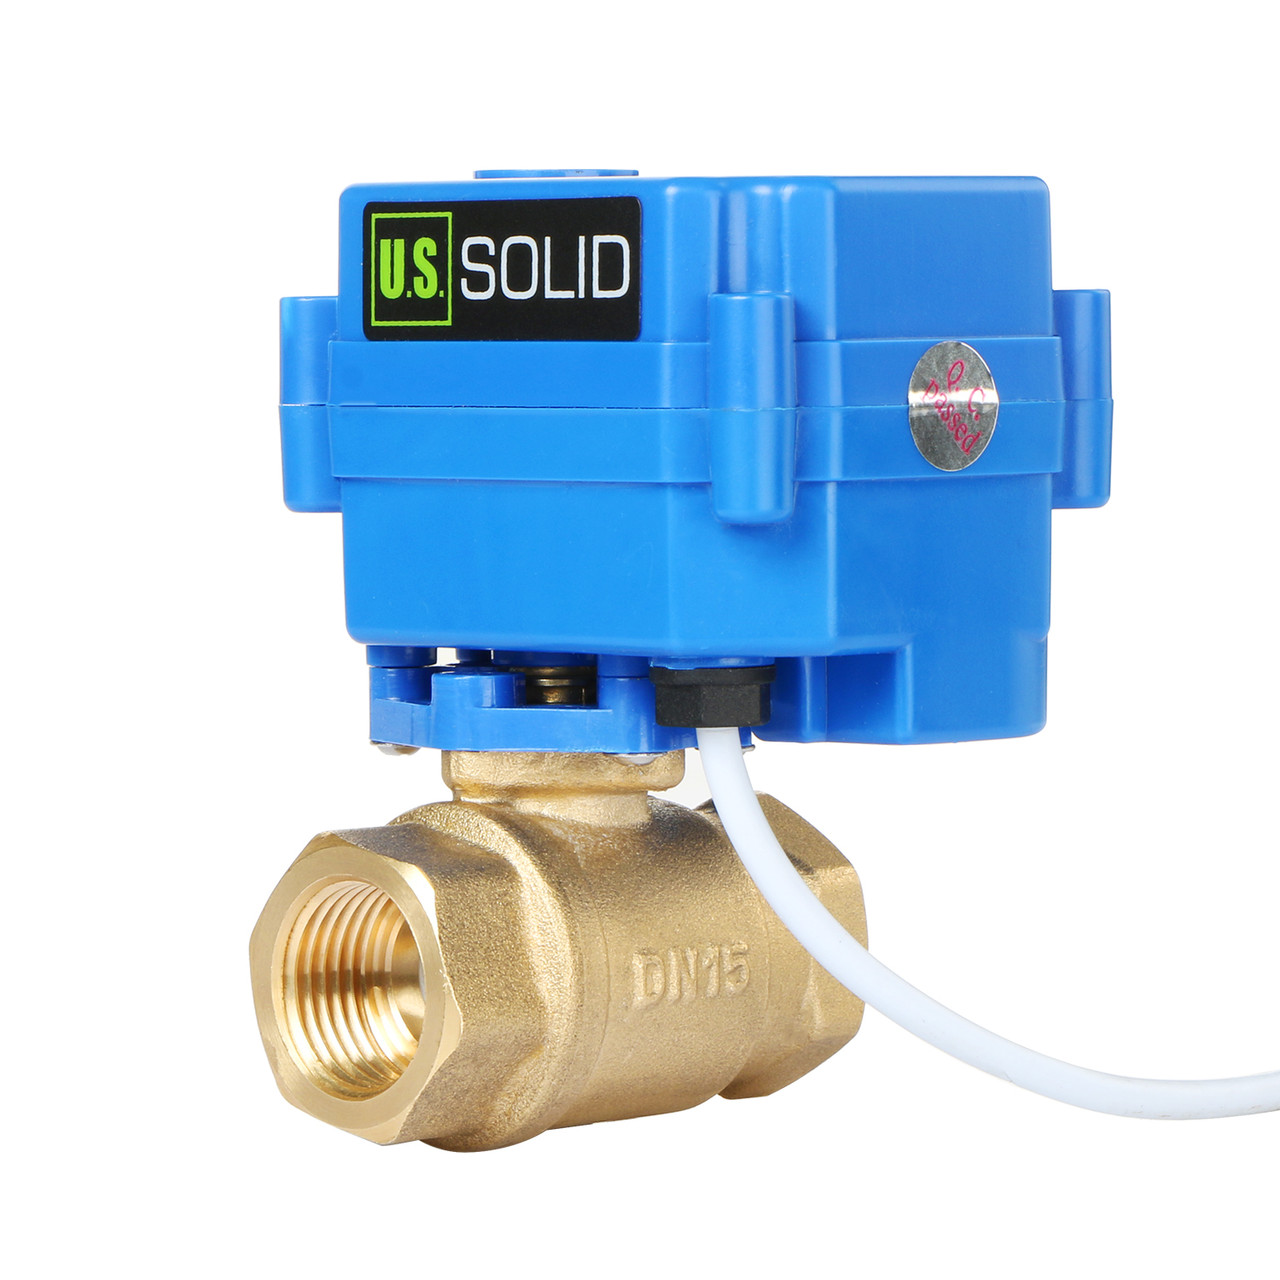 "U.S. Solid Motorized Ball Valve- 1/2"" Brass Electrical Ball Valve with Full Port, 9-24 V DC, 2 Wire Reverse Polarity"